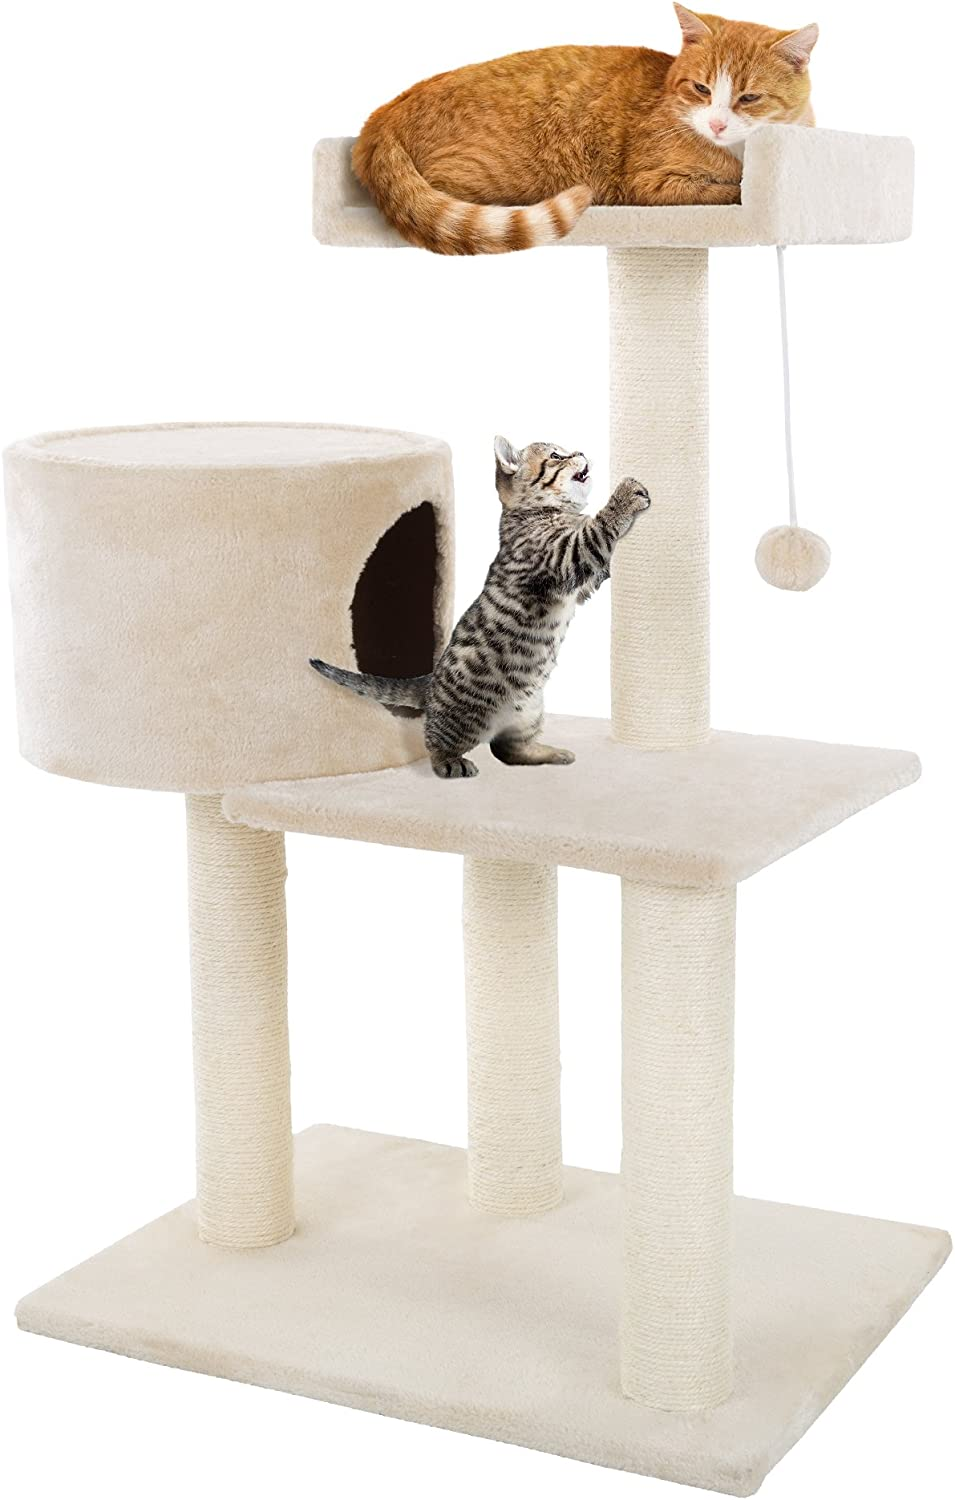 "3 Tier Cat Tree- Plush Multi Level Cat Tower with Scratching Posts, Perch Style Bed, Cat Condo and Hanging Toy for Cats and Kittens By PETMAKER (31"")"